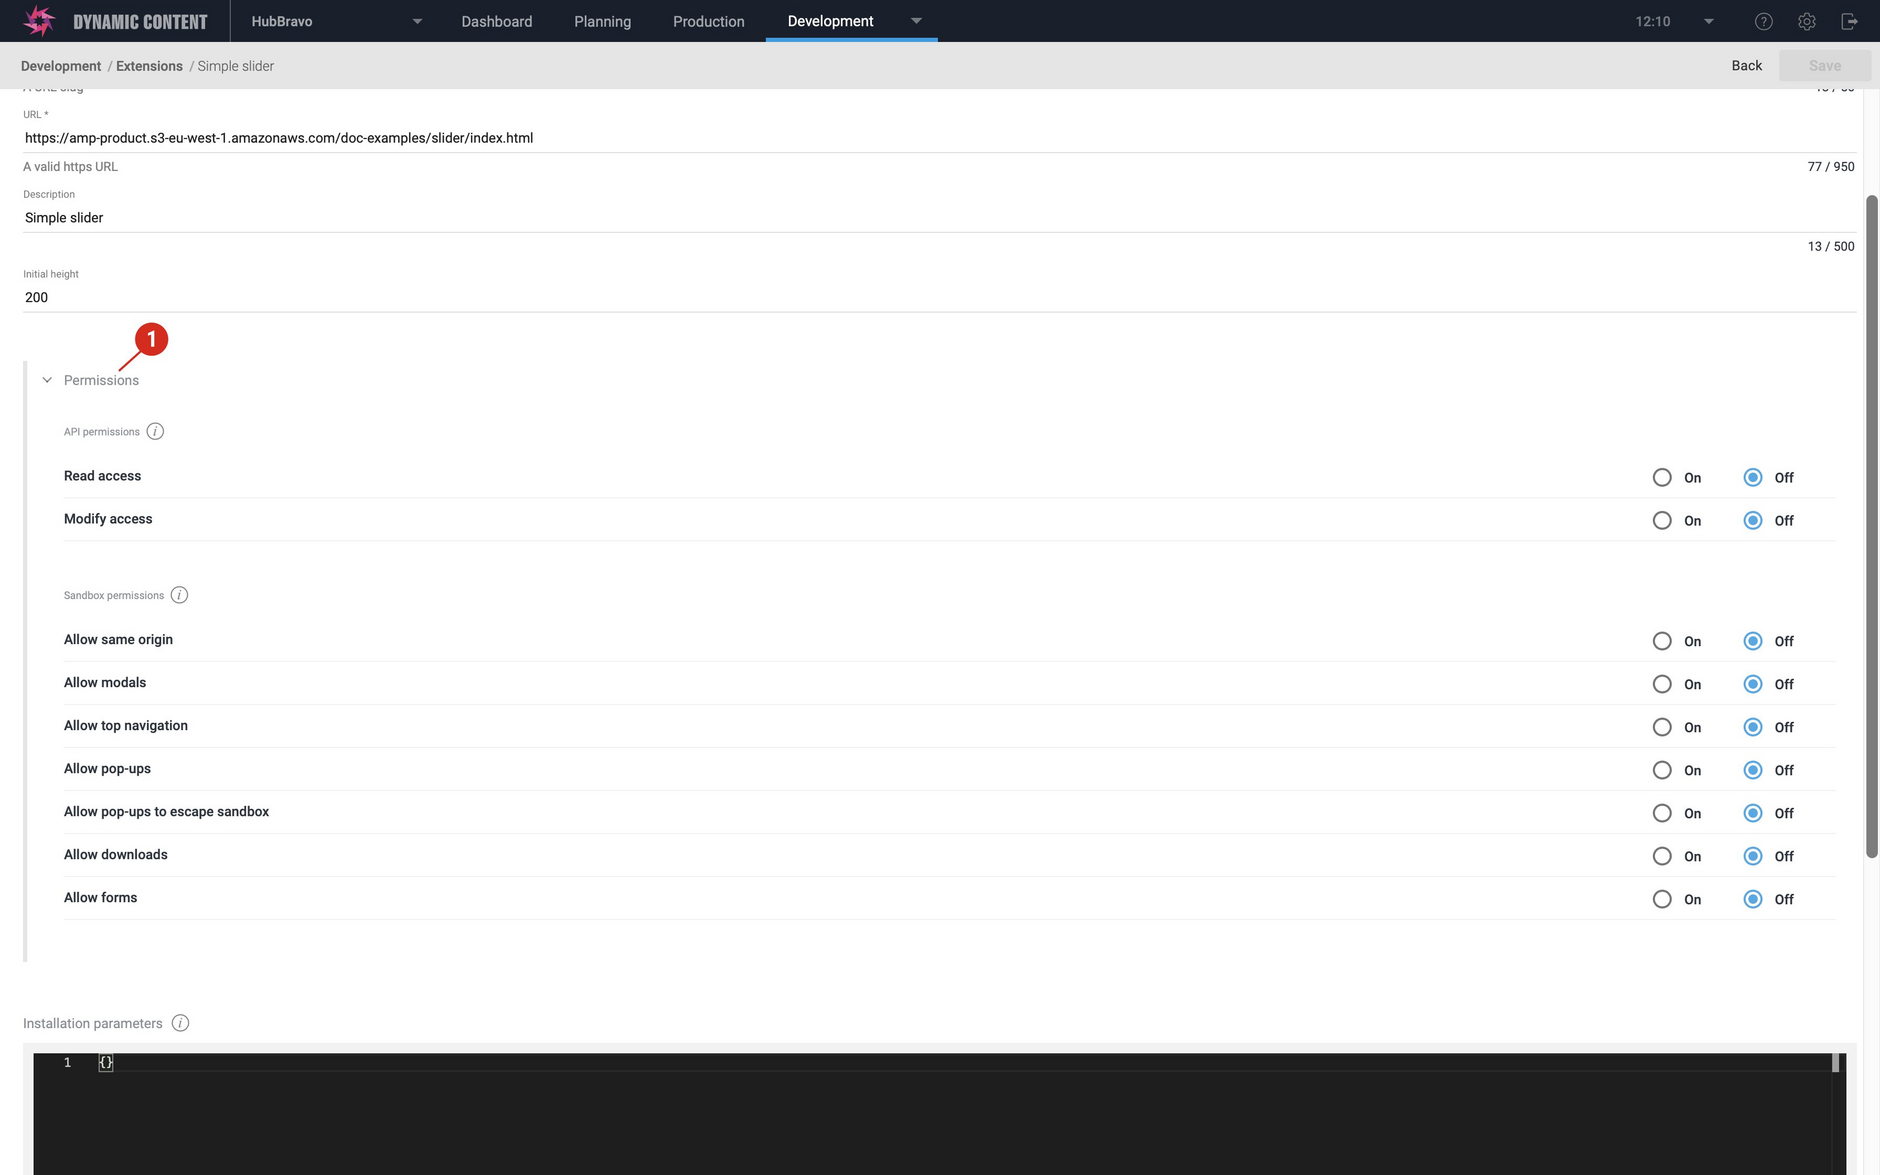 A permissions section has been added to the extensions registration window. From here you can choose to allow access to the Dynamic Content Management API and configure the sandbox permissions for an extension